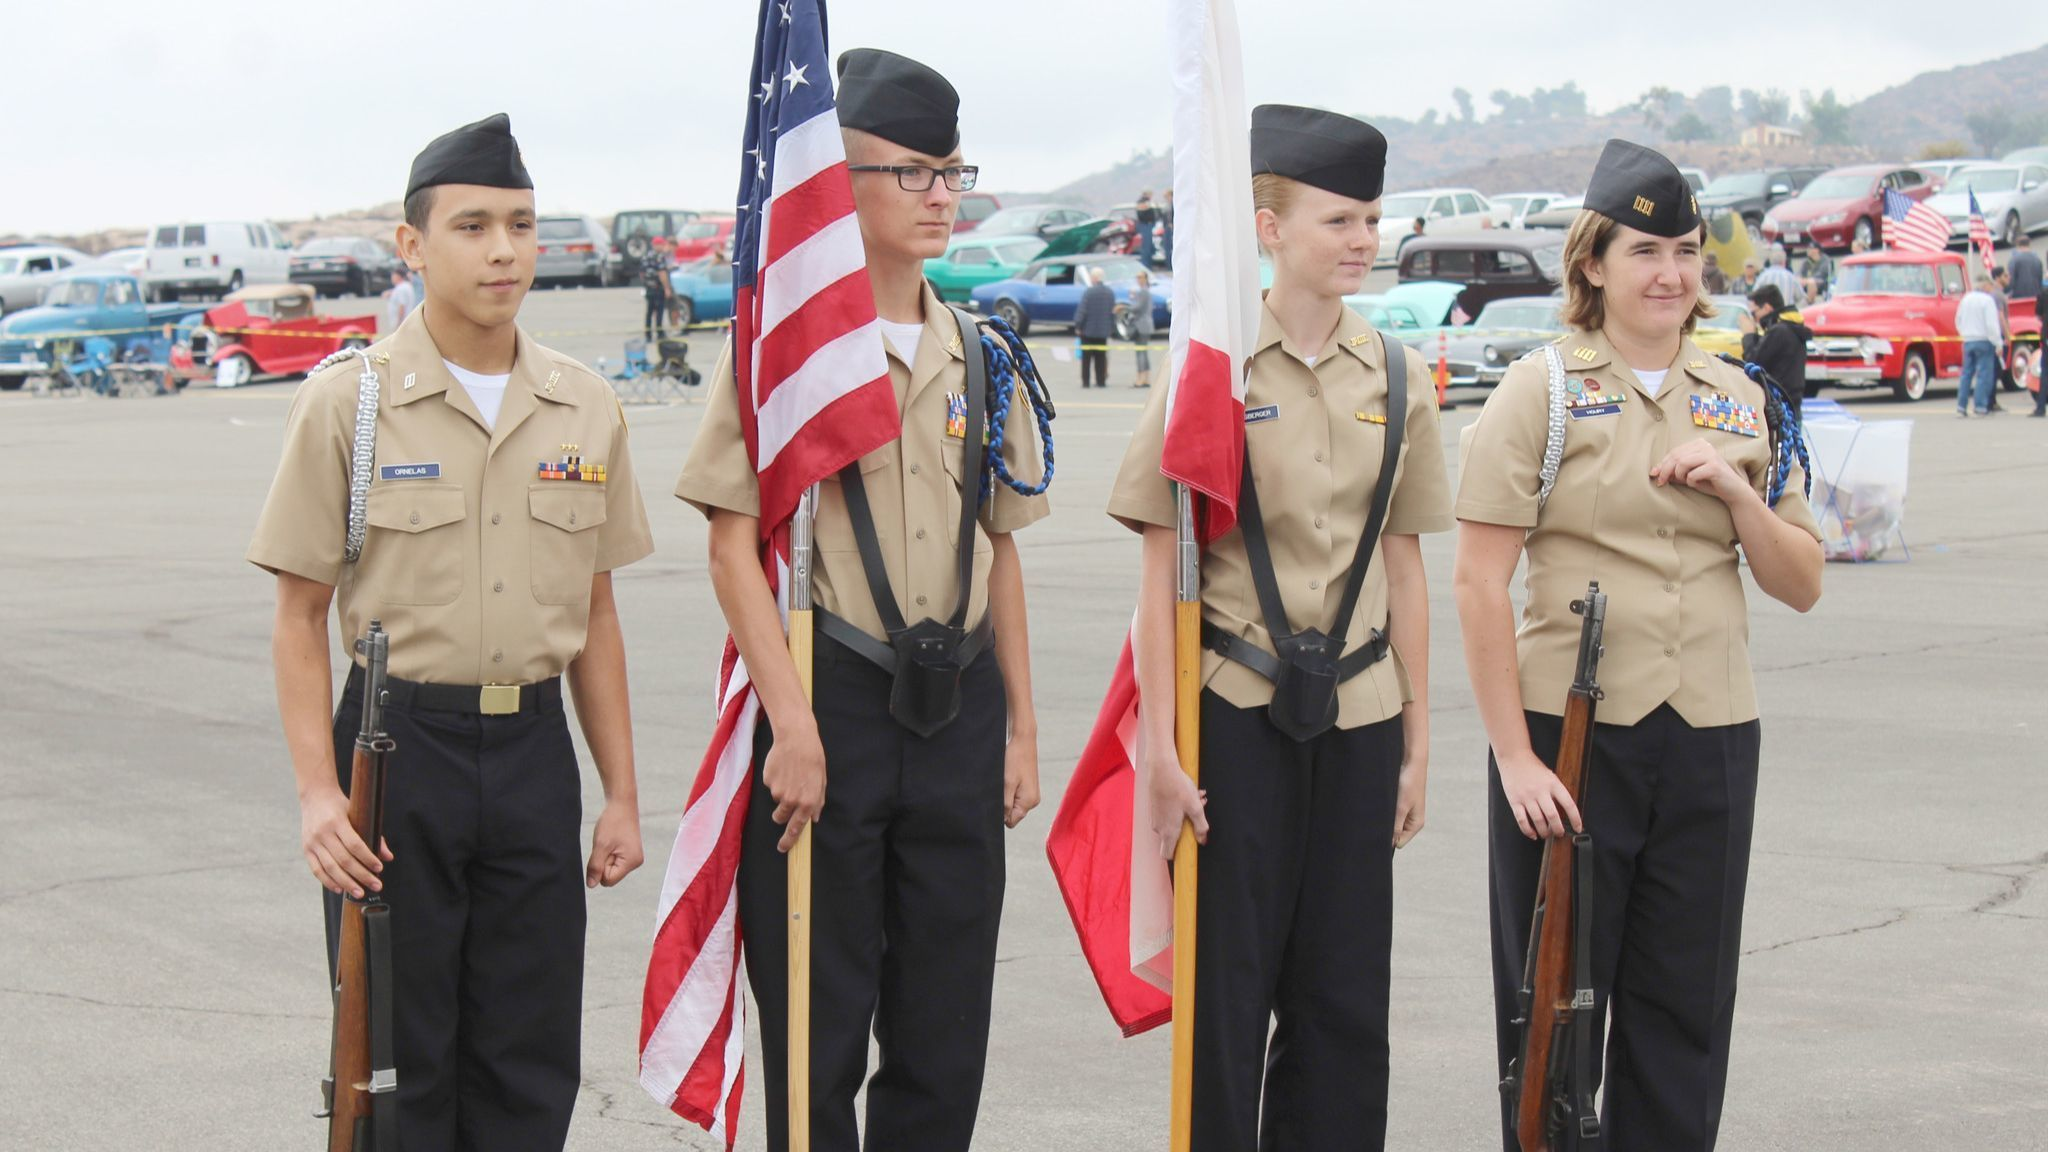 Ramona High School Navy Junior Reserve Officers Training Corps cadets present the colors. From left are: Amado Ornelas, Jacob Mask, Megan Hunsberger and Marisa Houry.